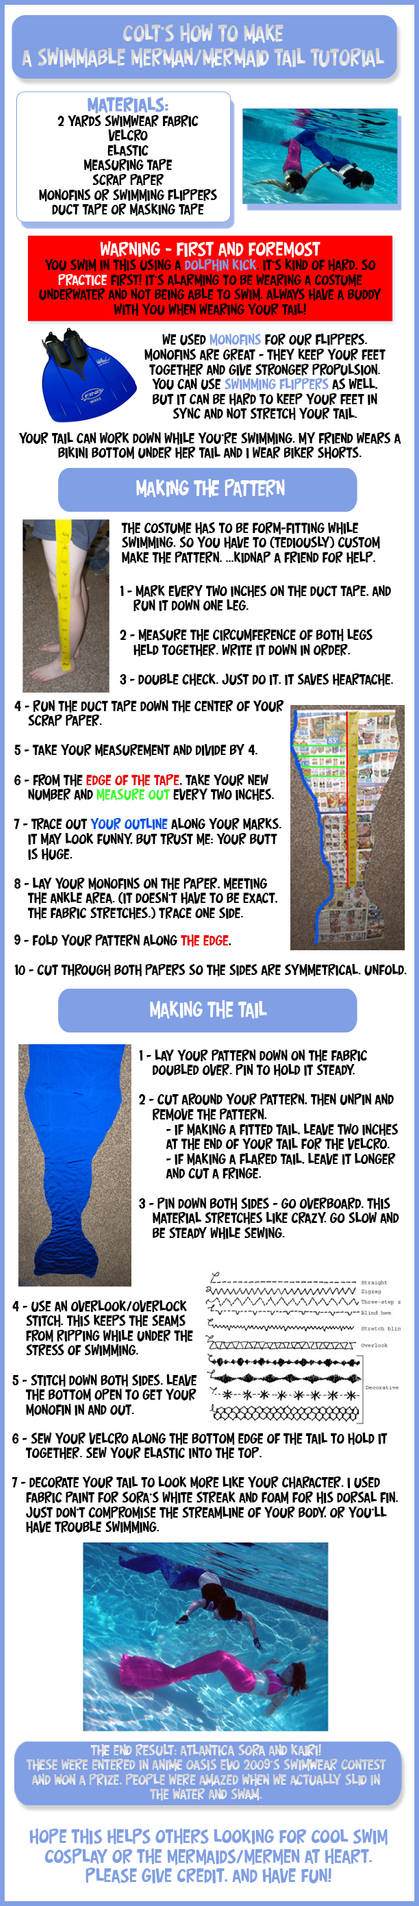 How-to: Swimmable mermaid tail by Colt-kun on DeviantArt